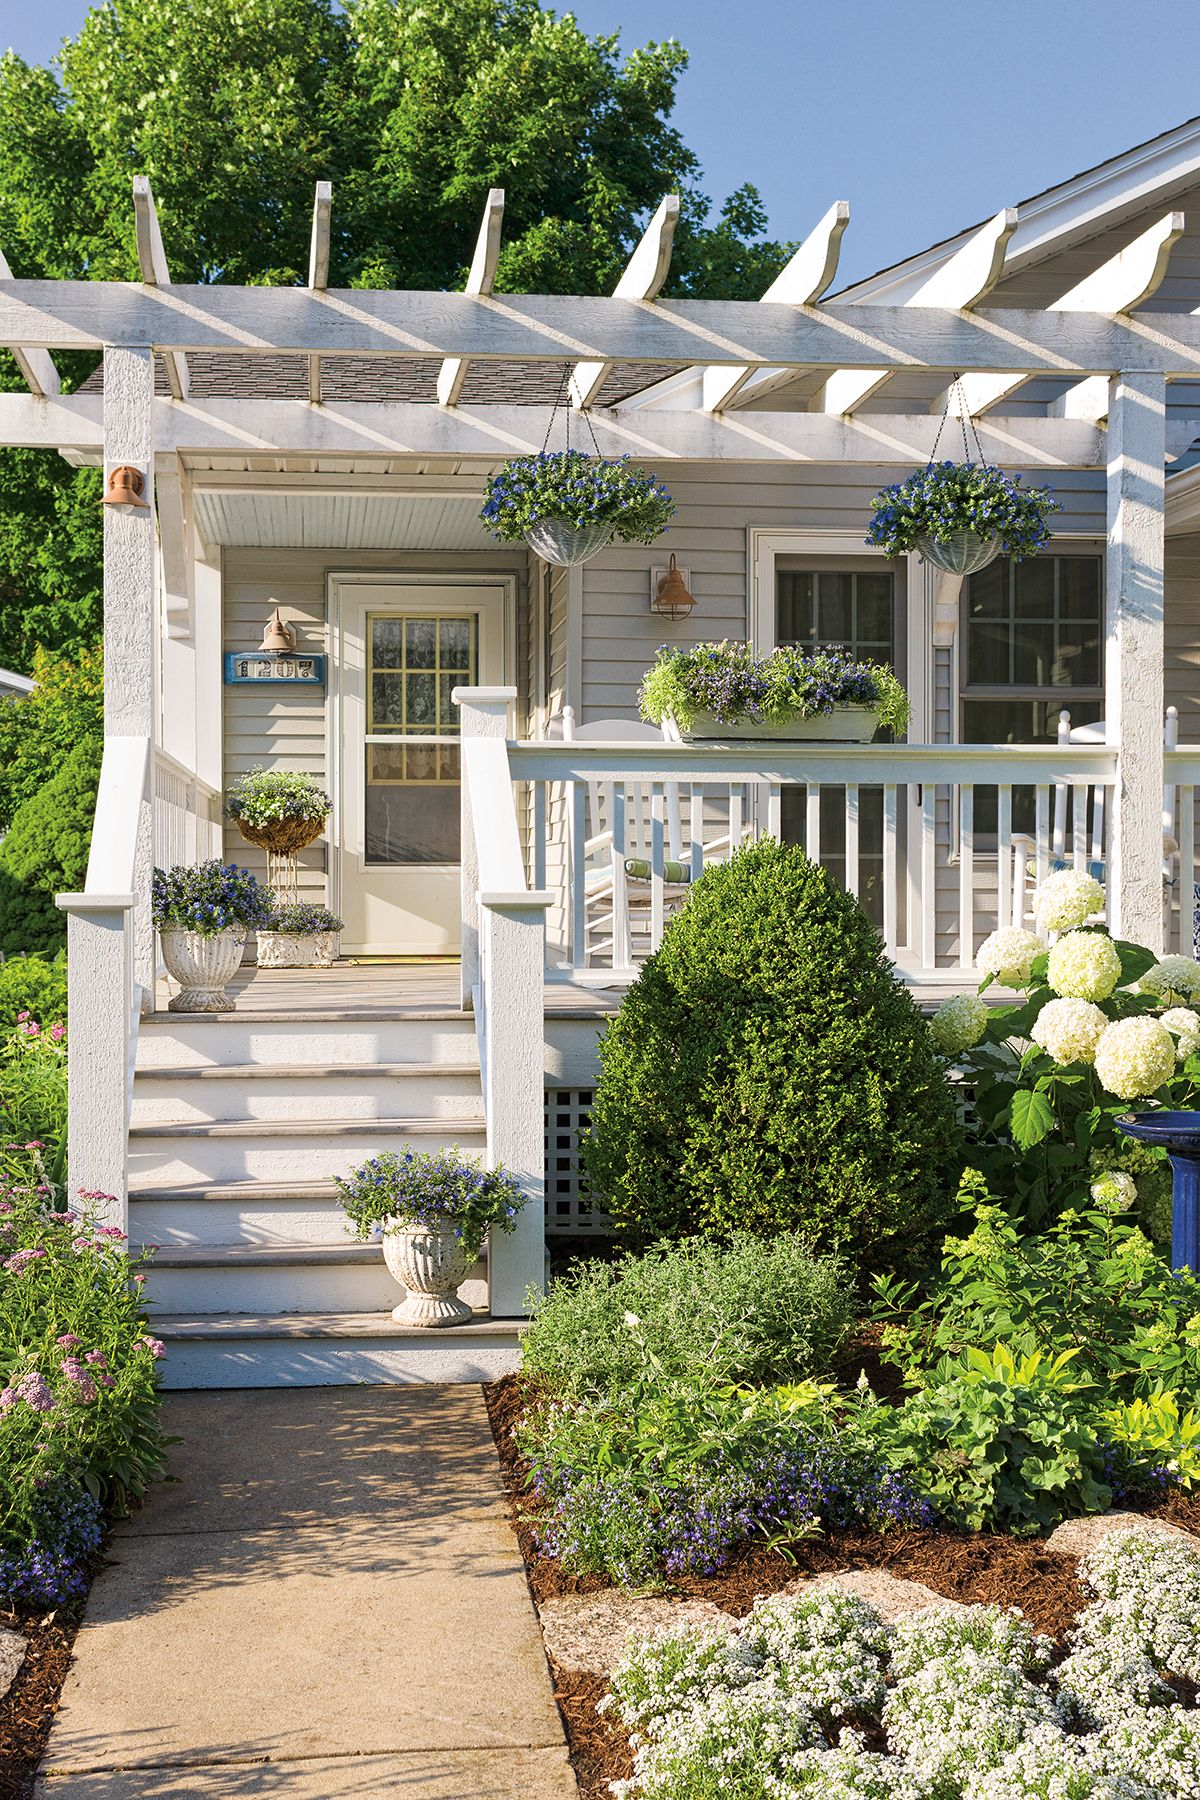 The Front Porch Of This Craftsman Bungalow Faces South So It Receives Direct Sun During